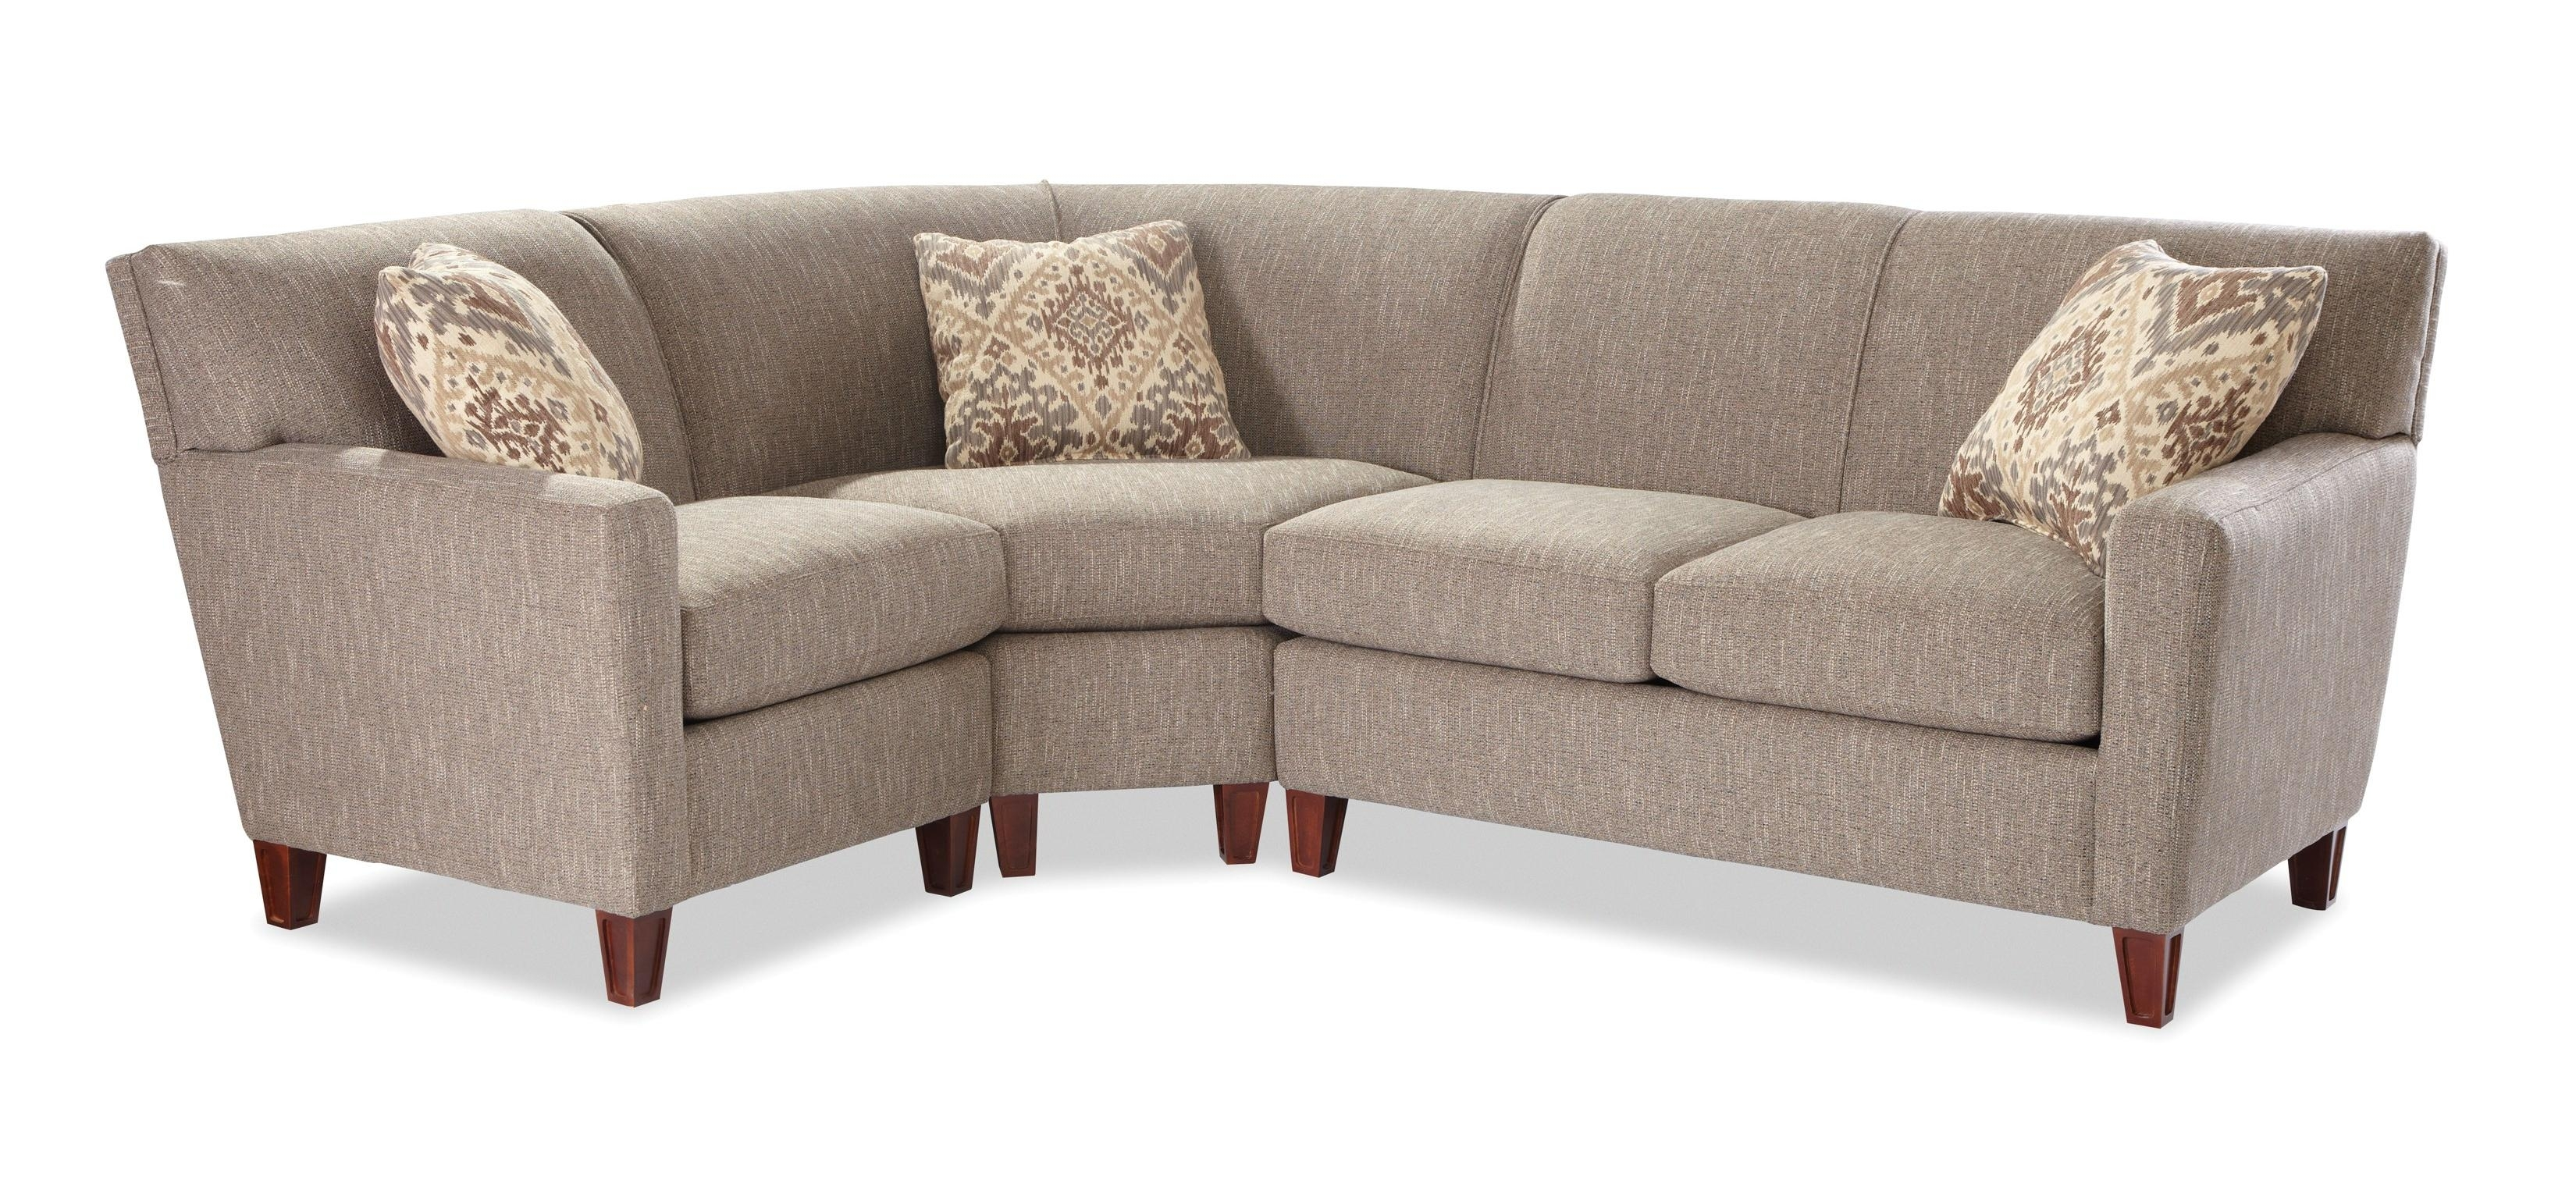 Laf Sofa Raf Loveseat | Baci Living Room With Regard To Turdur 2 Piece Sectionals With Raf Loveseat (Image 12 of 25)